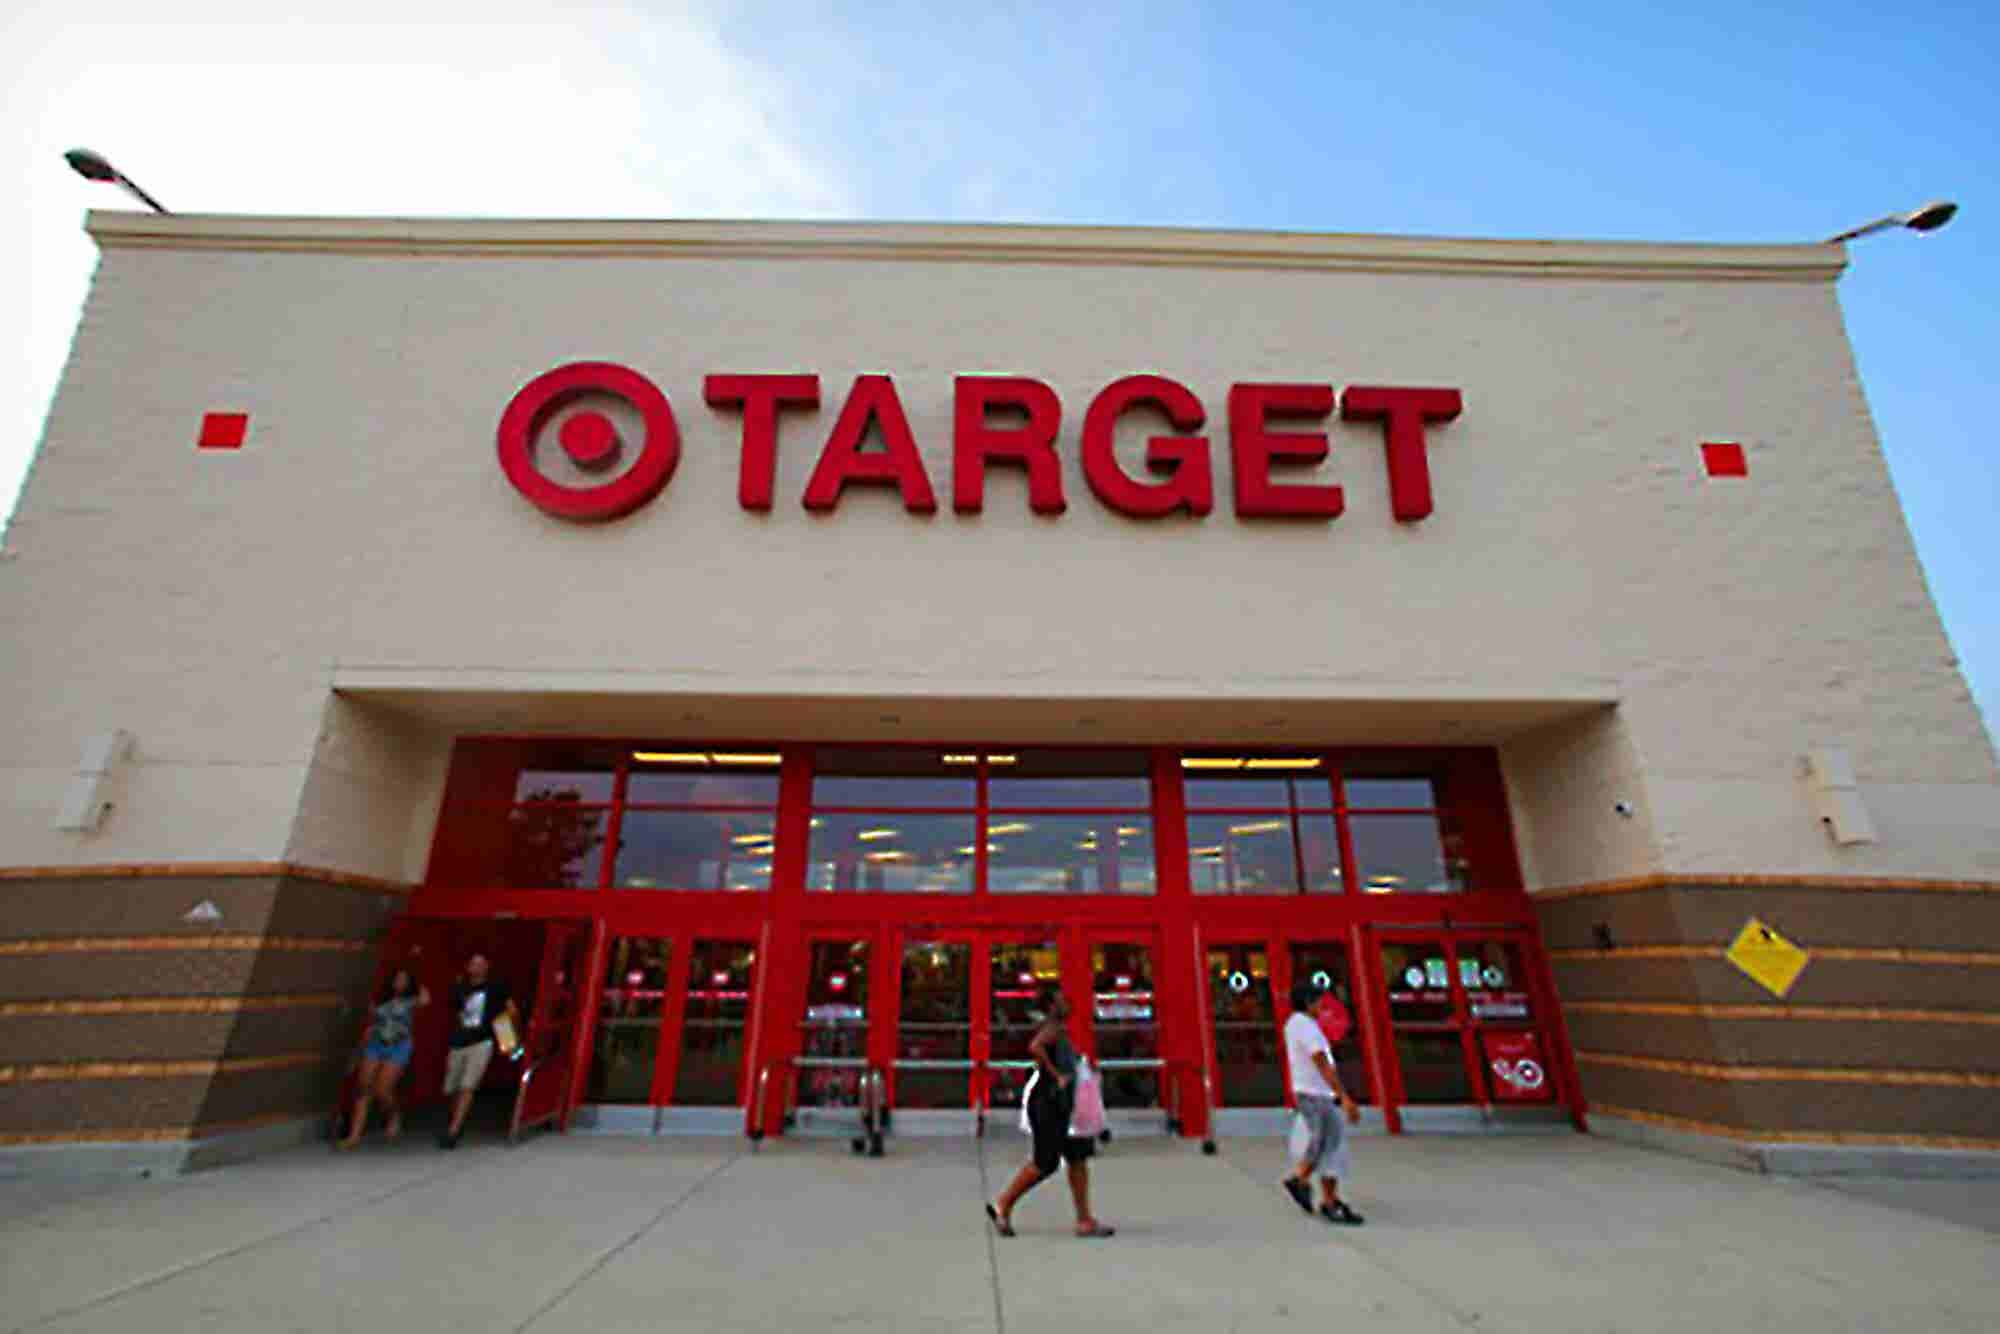 Target vs. Facebook: 2 Paths to Handling Politically Charged Situations